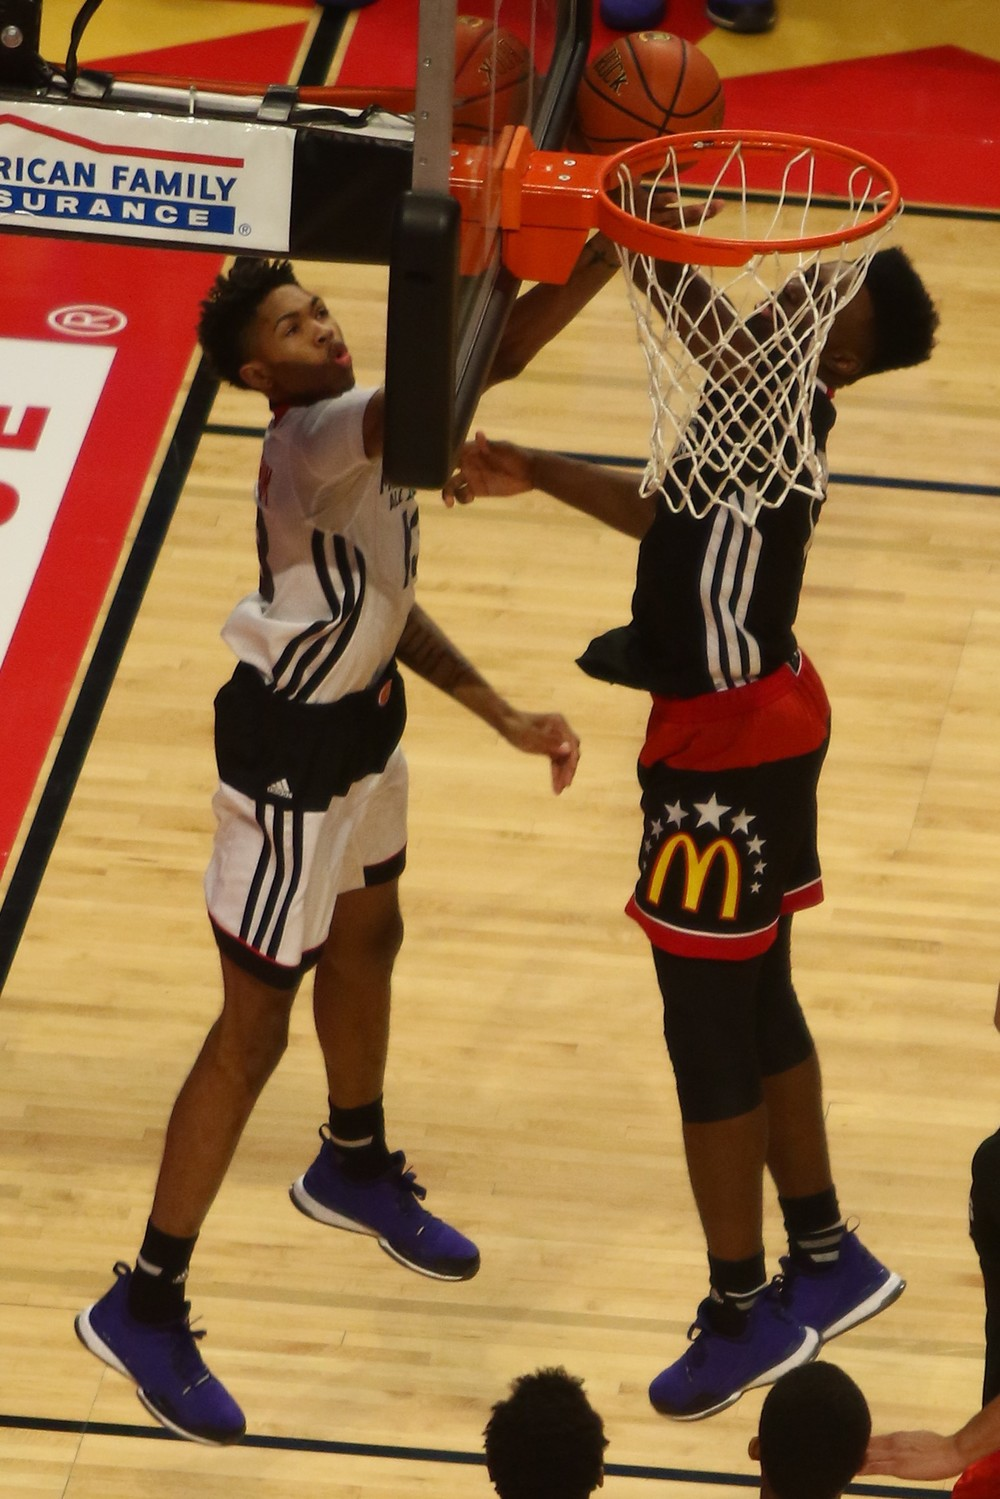 Brandon Ingram from behind the backboard at the 2015 McDonald's All-American Game